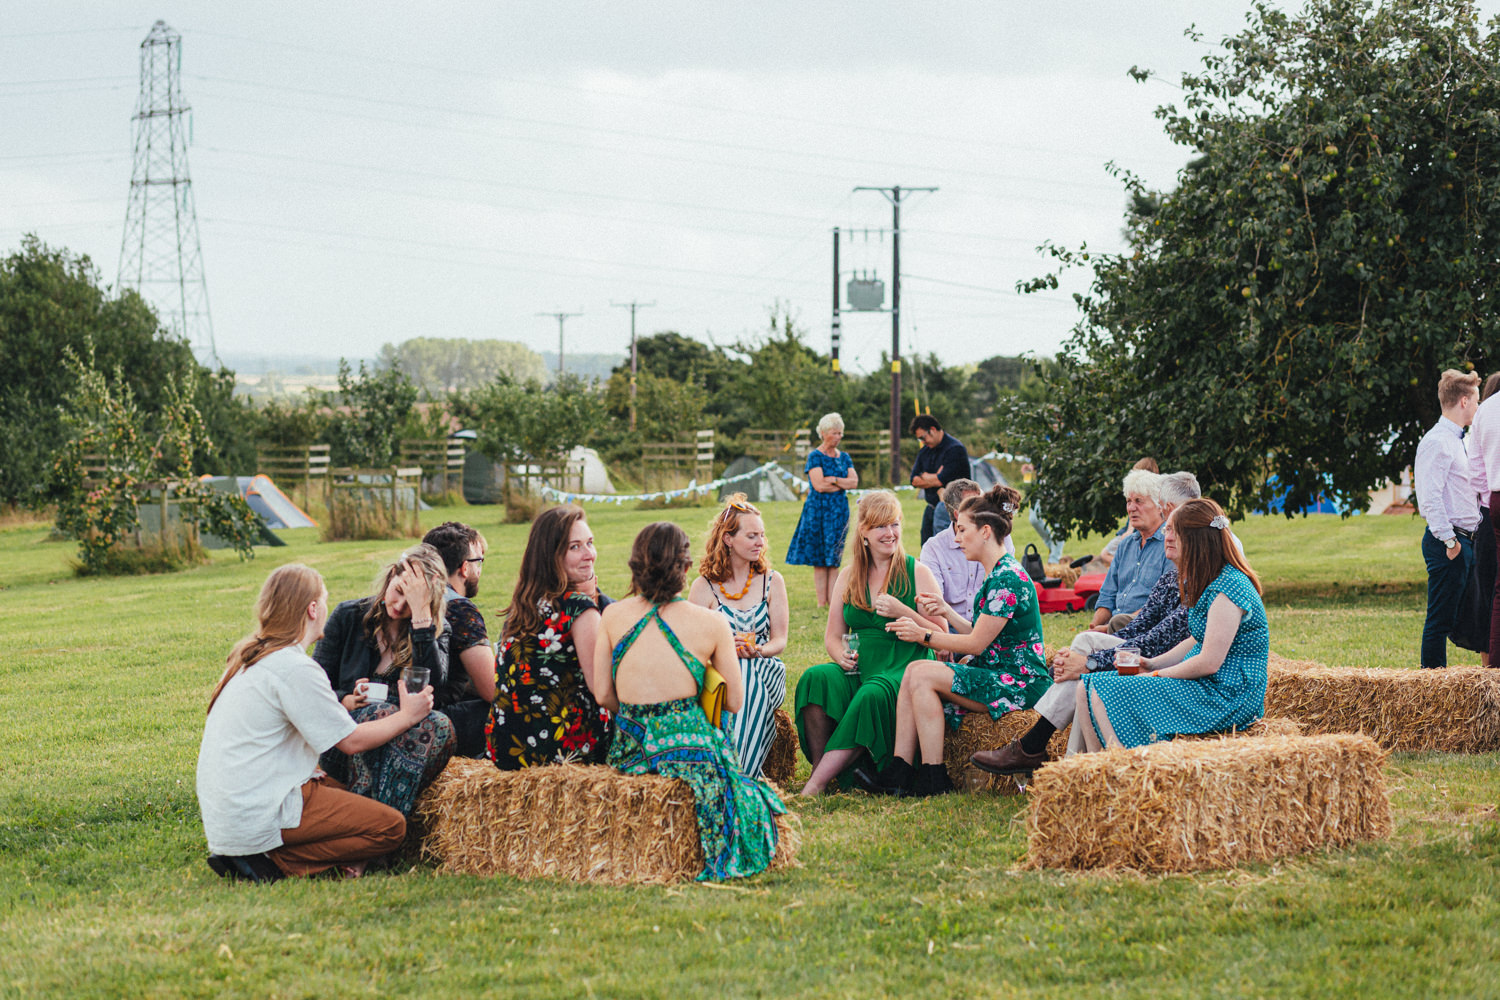 haybales, guests relaxing on haybales at a wedding, outdoor wedding photography, farm wedding, devon wedding, devon wedding photographer, alternative wedding, eco friendly wedding, green wedding